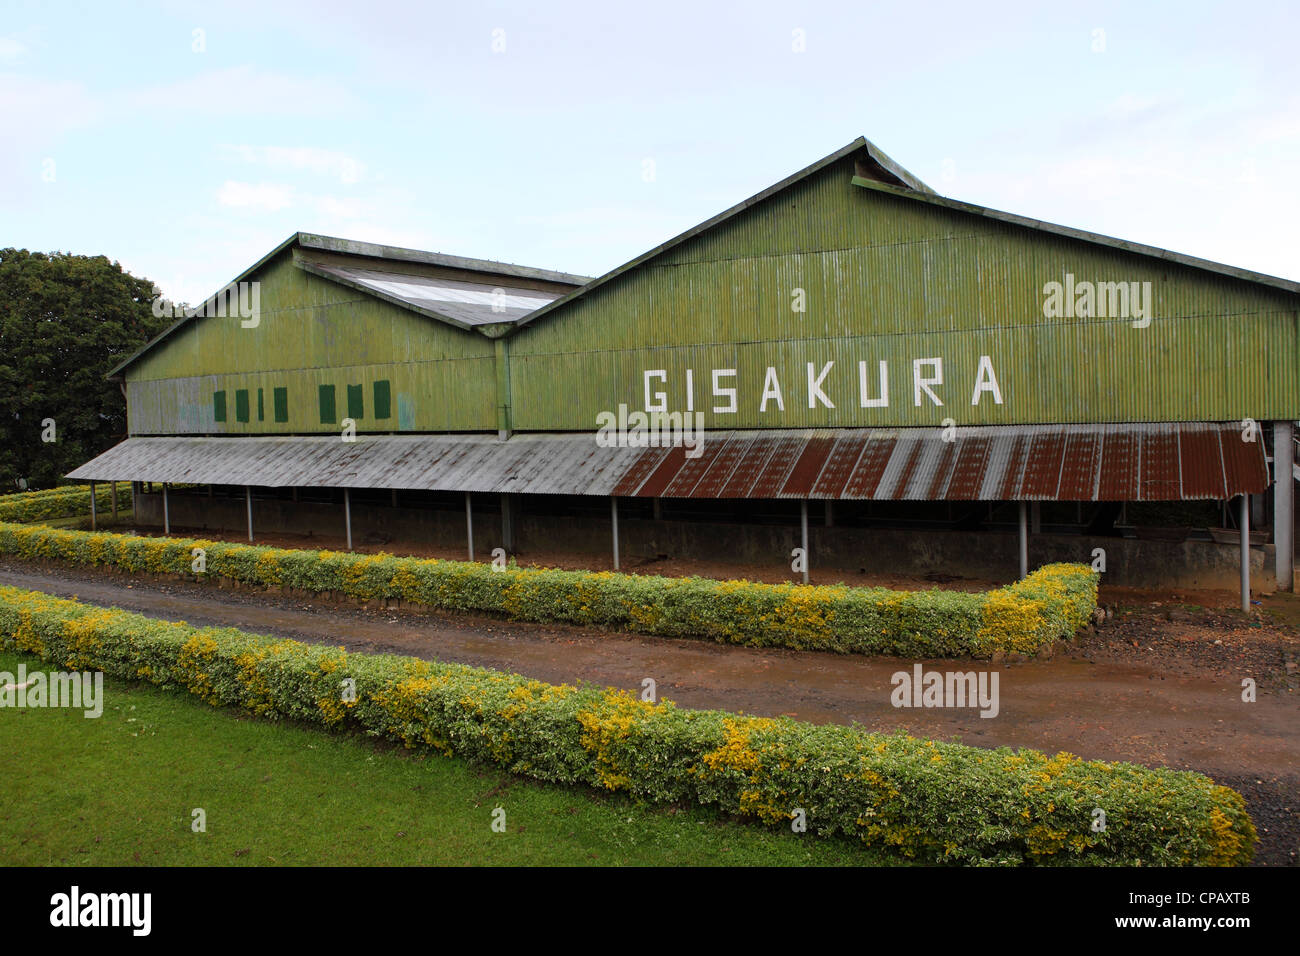 The Gisakura Tea Factory in Rwanda. Rwanda produces a number of high quality teas, much of which is exported. - Stock Image